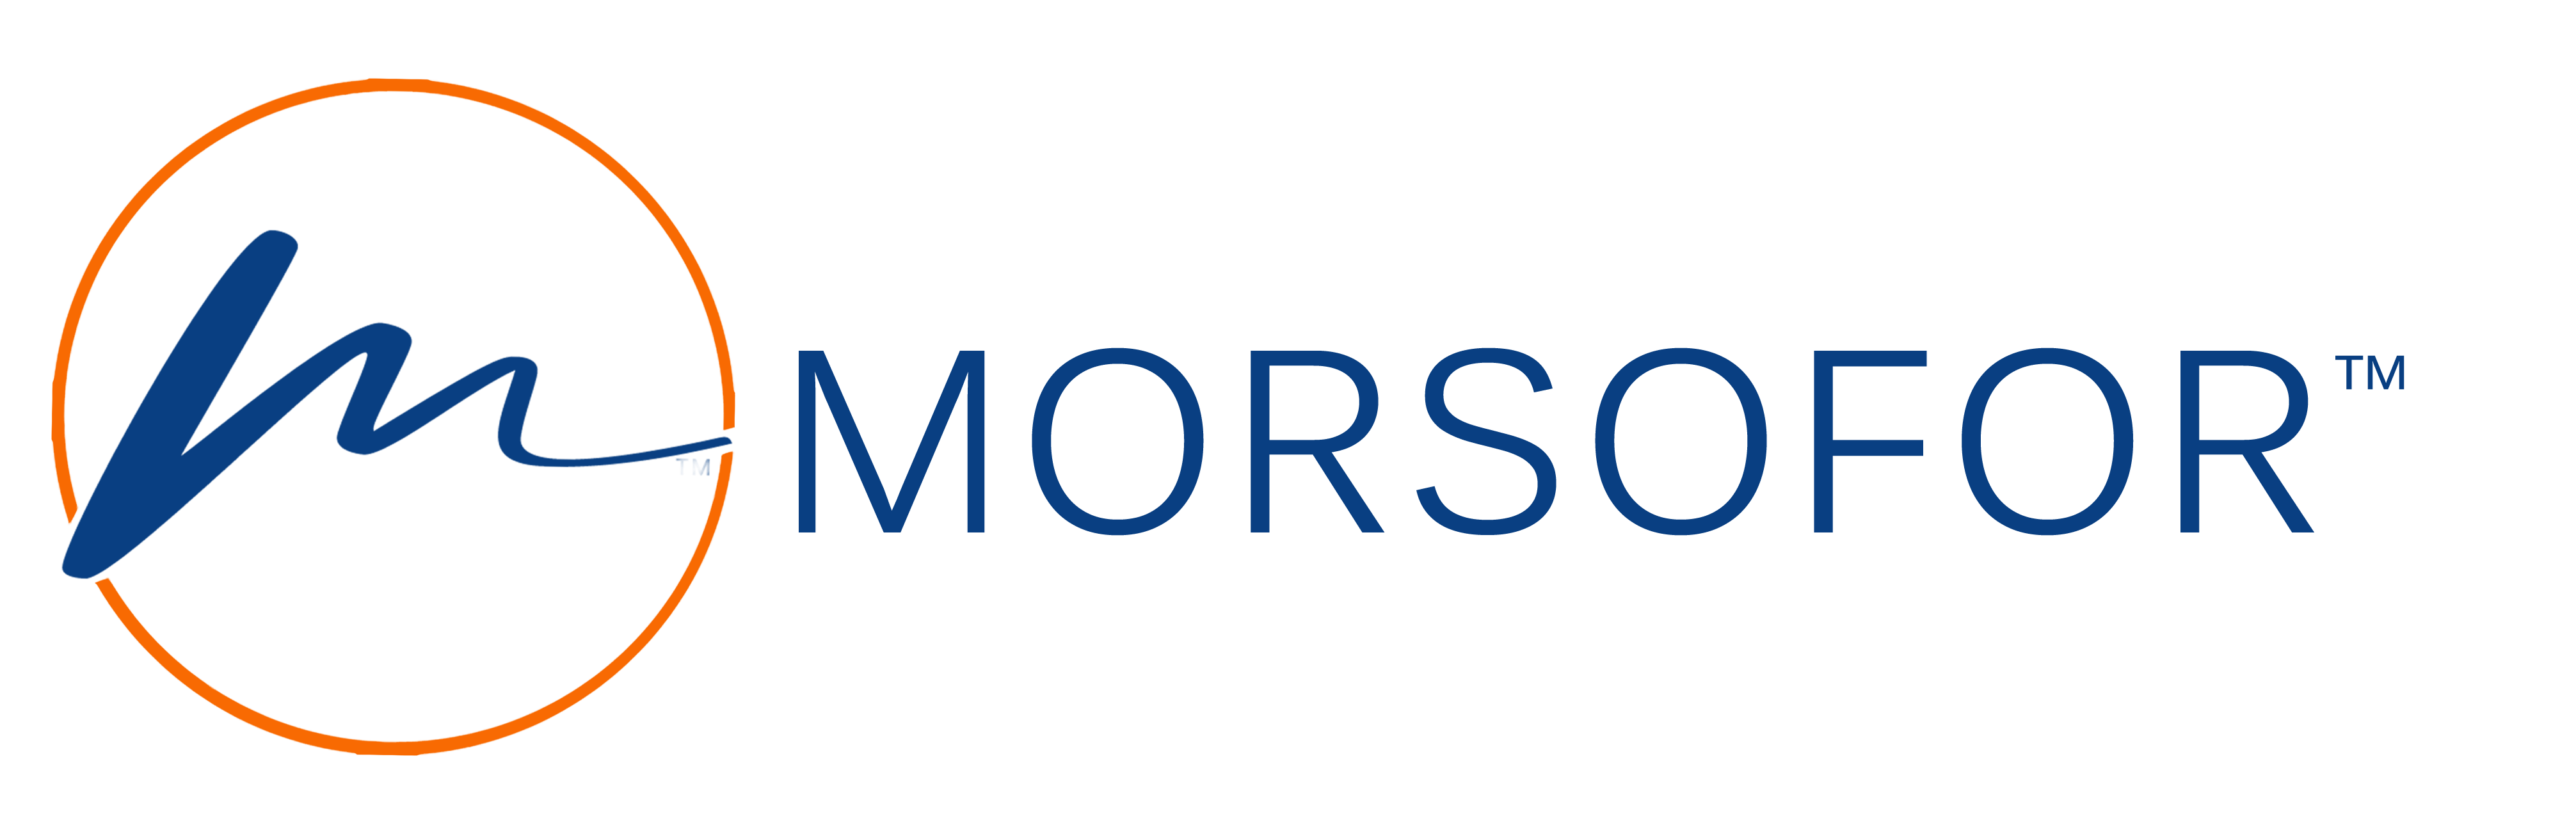 MOROSFOR1 WITH TM